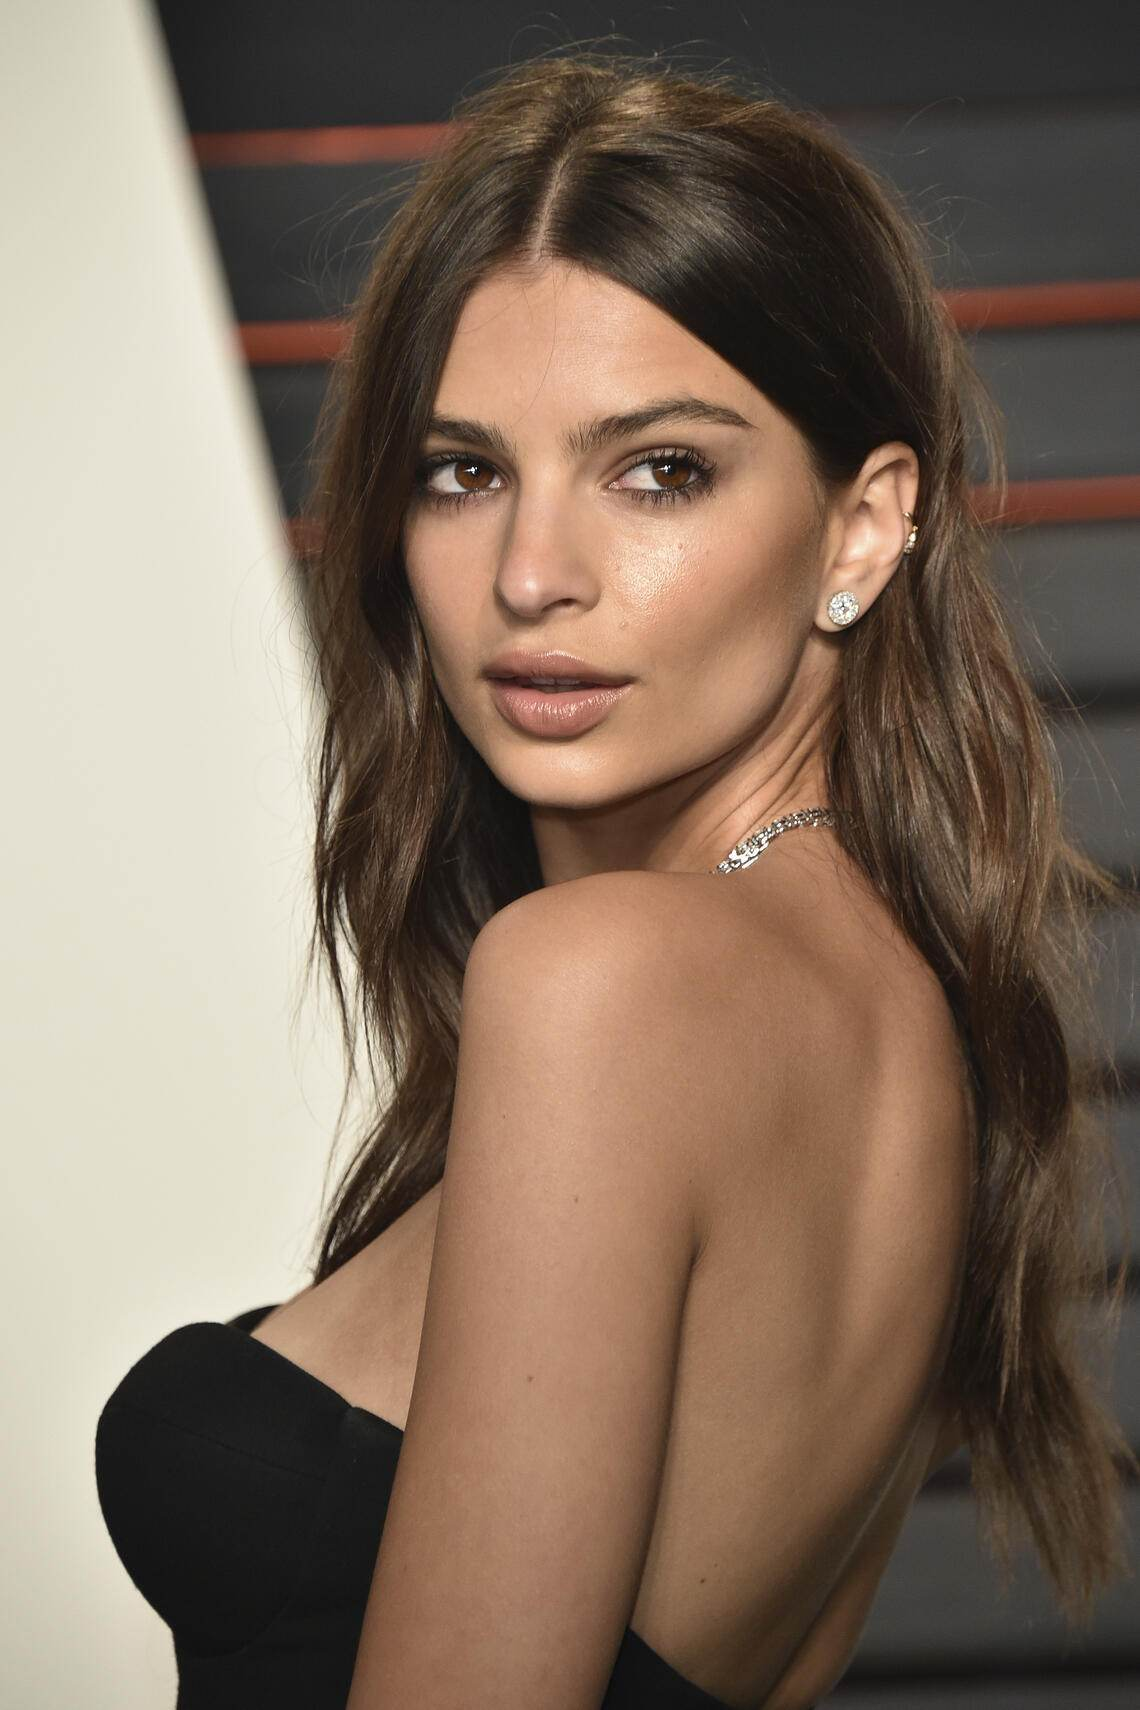 BEVERLY HILLS, CA - FEBRUARY 28:  Actress Emily Ratajkowski arrives at the 2016 Vanity Fair Oscar Party Hosted By Graydon Carter at Wallis Annenberg Center for the Performing Arts on February 28, 2016 in Beverly Hills, California.  (Photo by John Shearer/Getty Images)